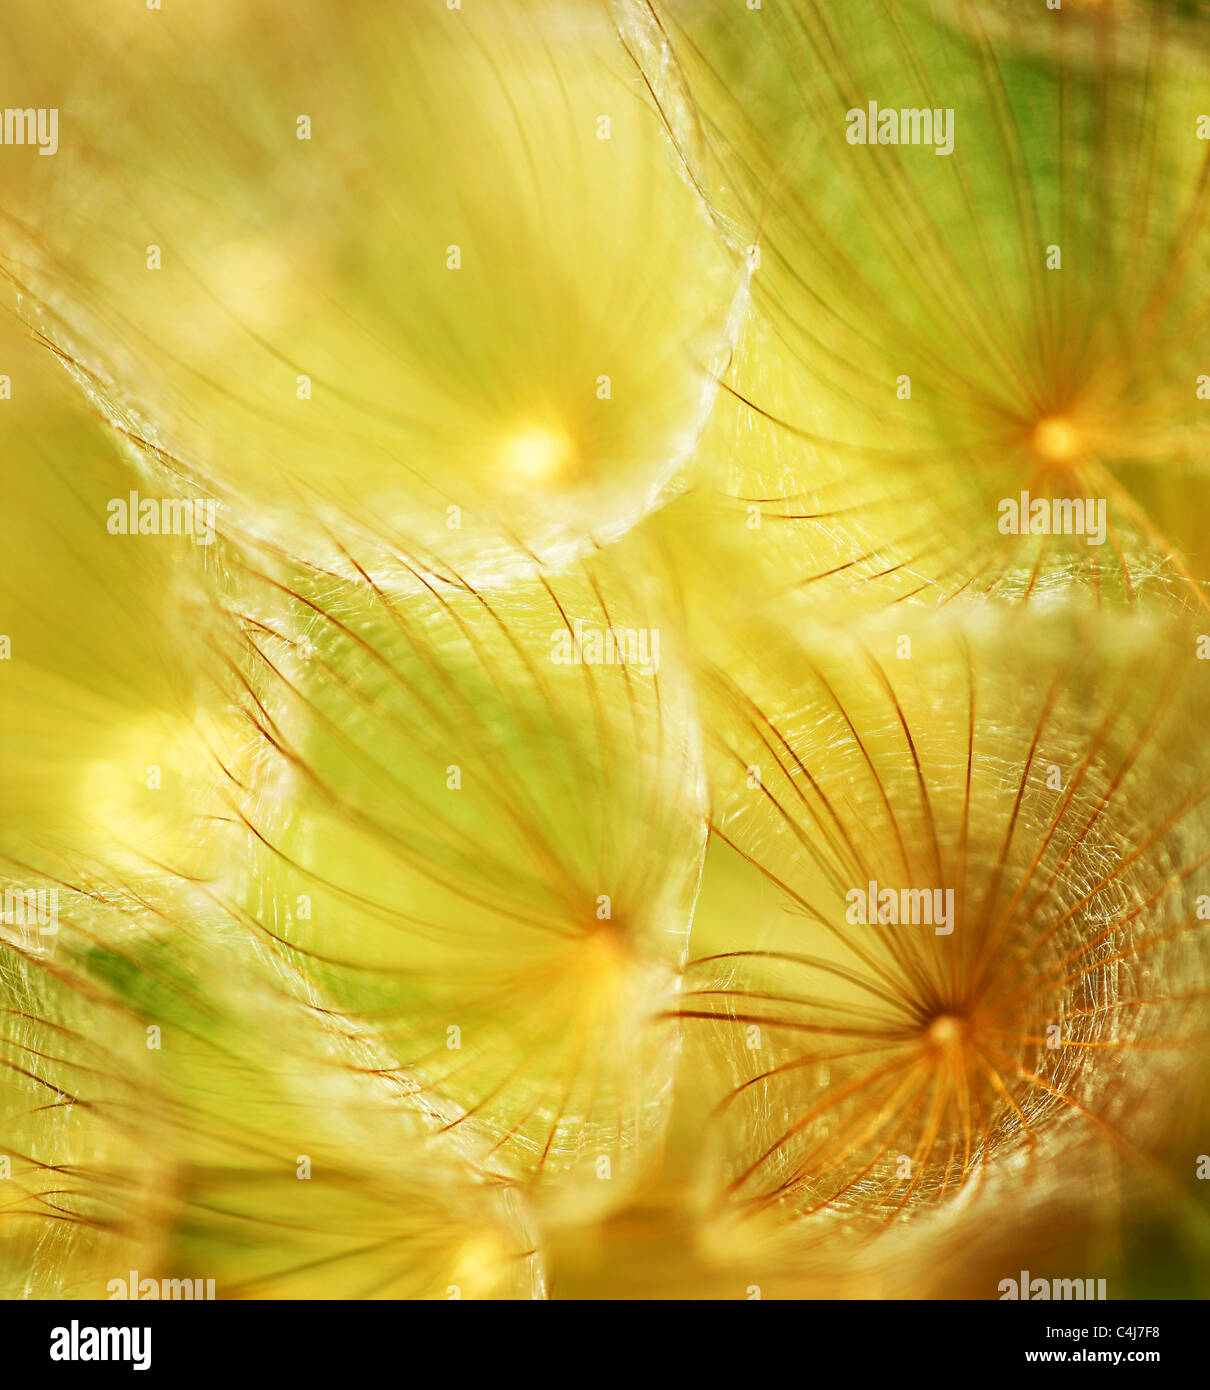 Soft dandelion flower, extreme closeup, abstract spring nature background Stock Photo